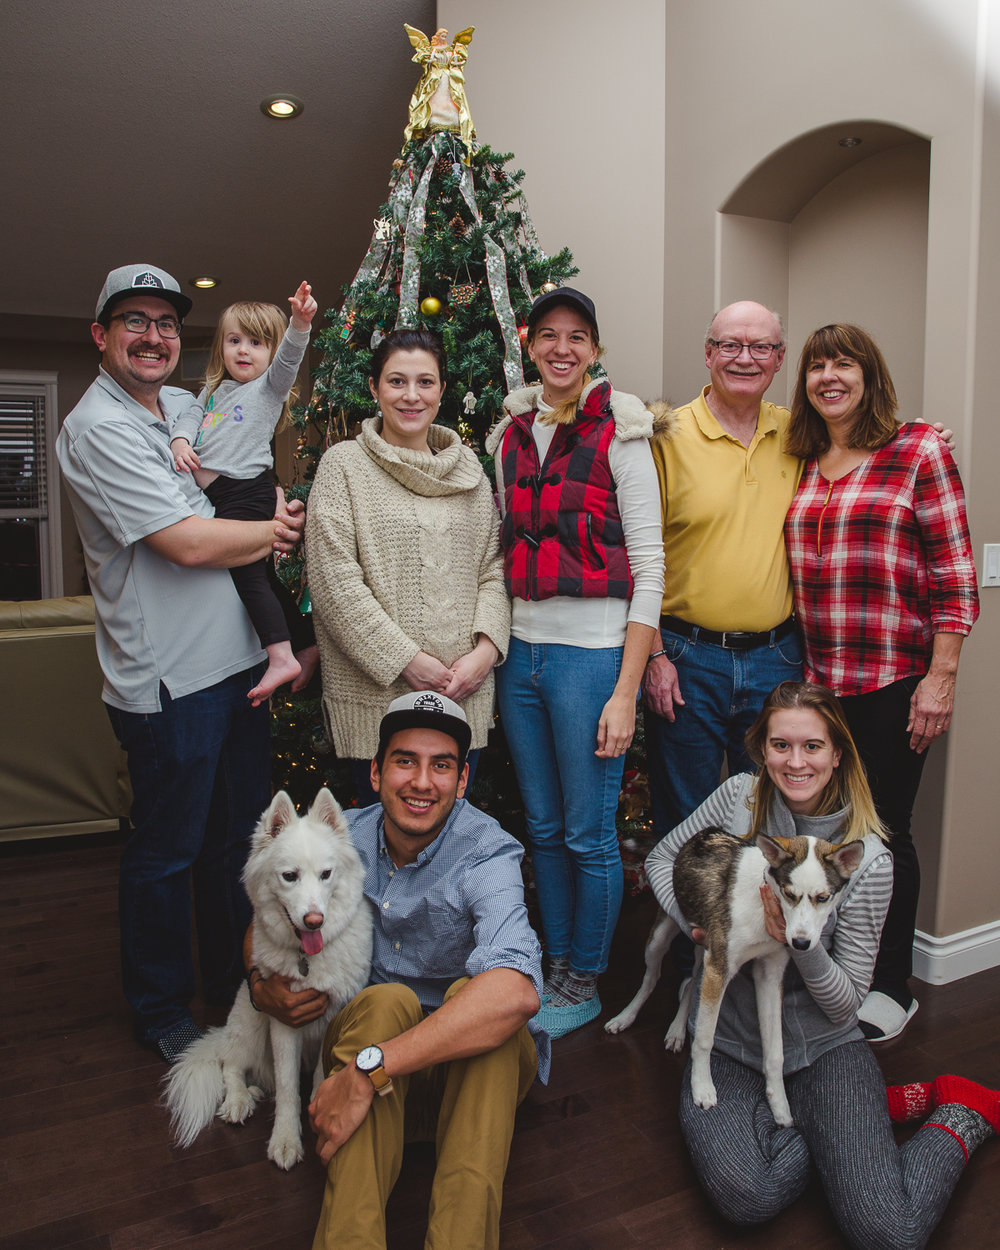 My wonderful family and I on Christmas (missing: Looch the dog).